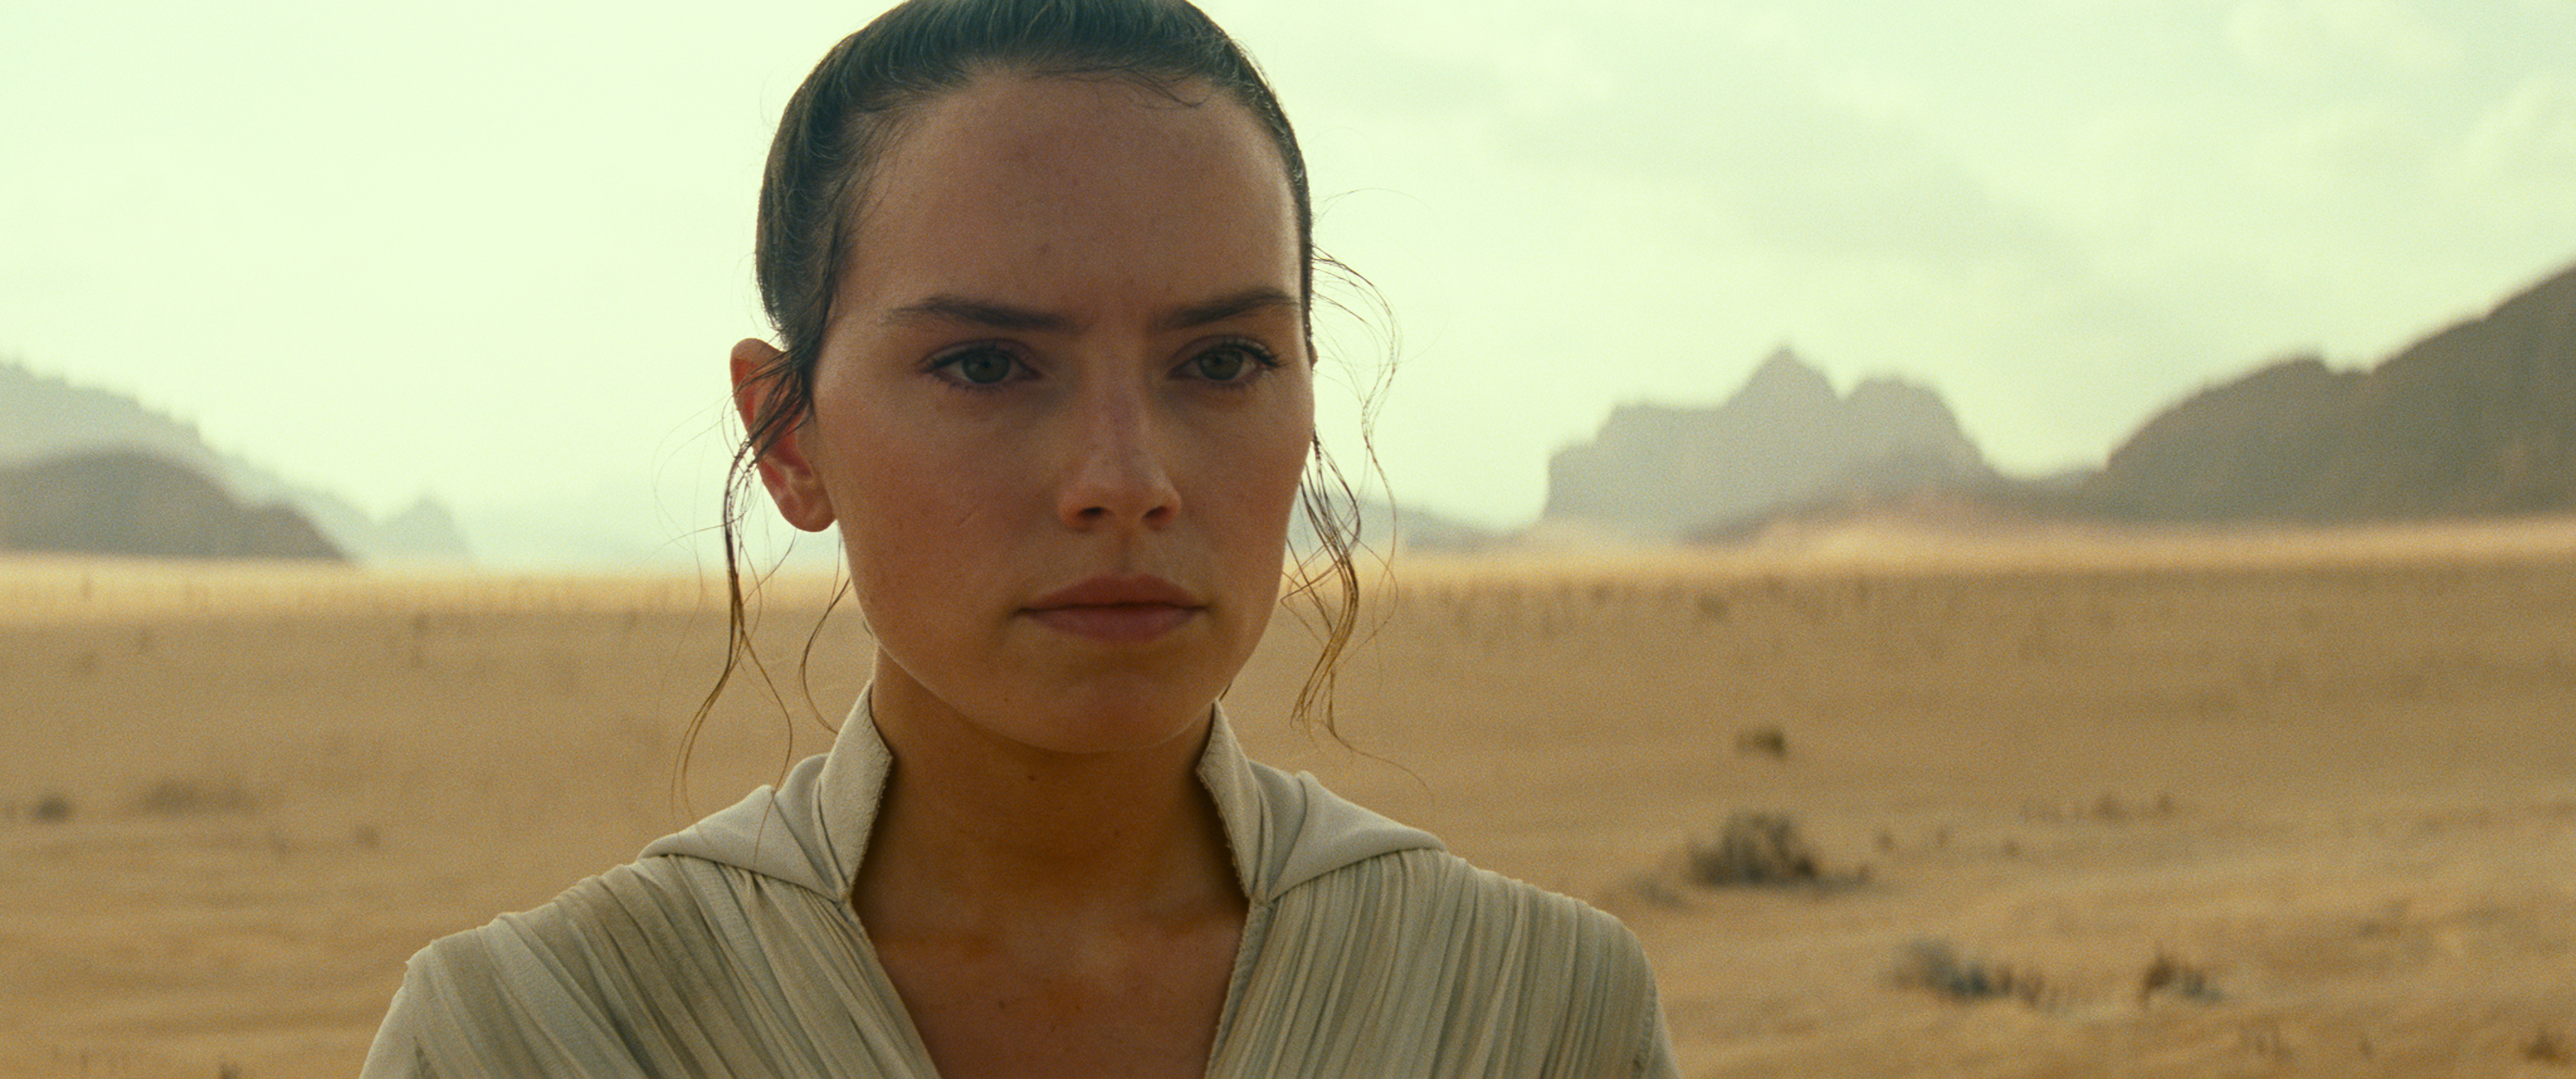 star-wars-the-rise-of-skywalker-official-high-resolution-images-10